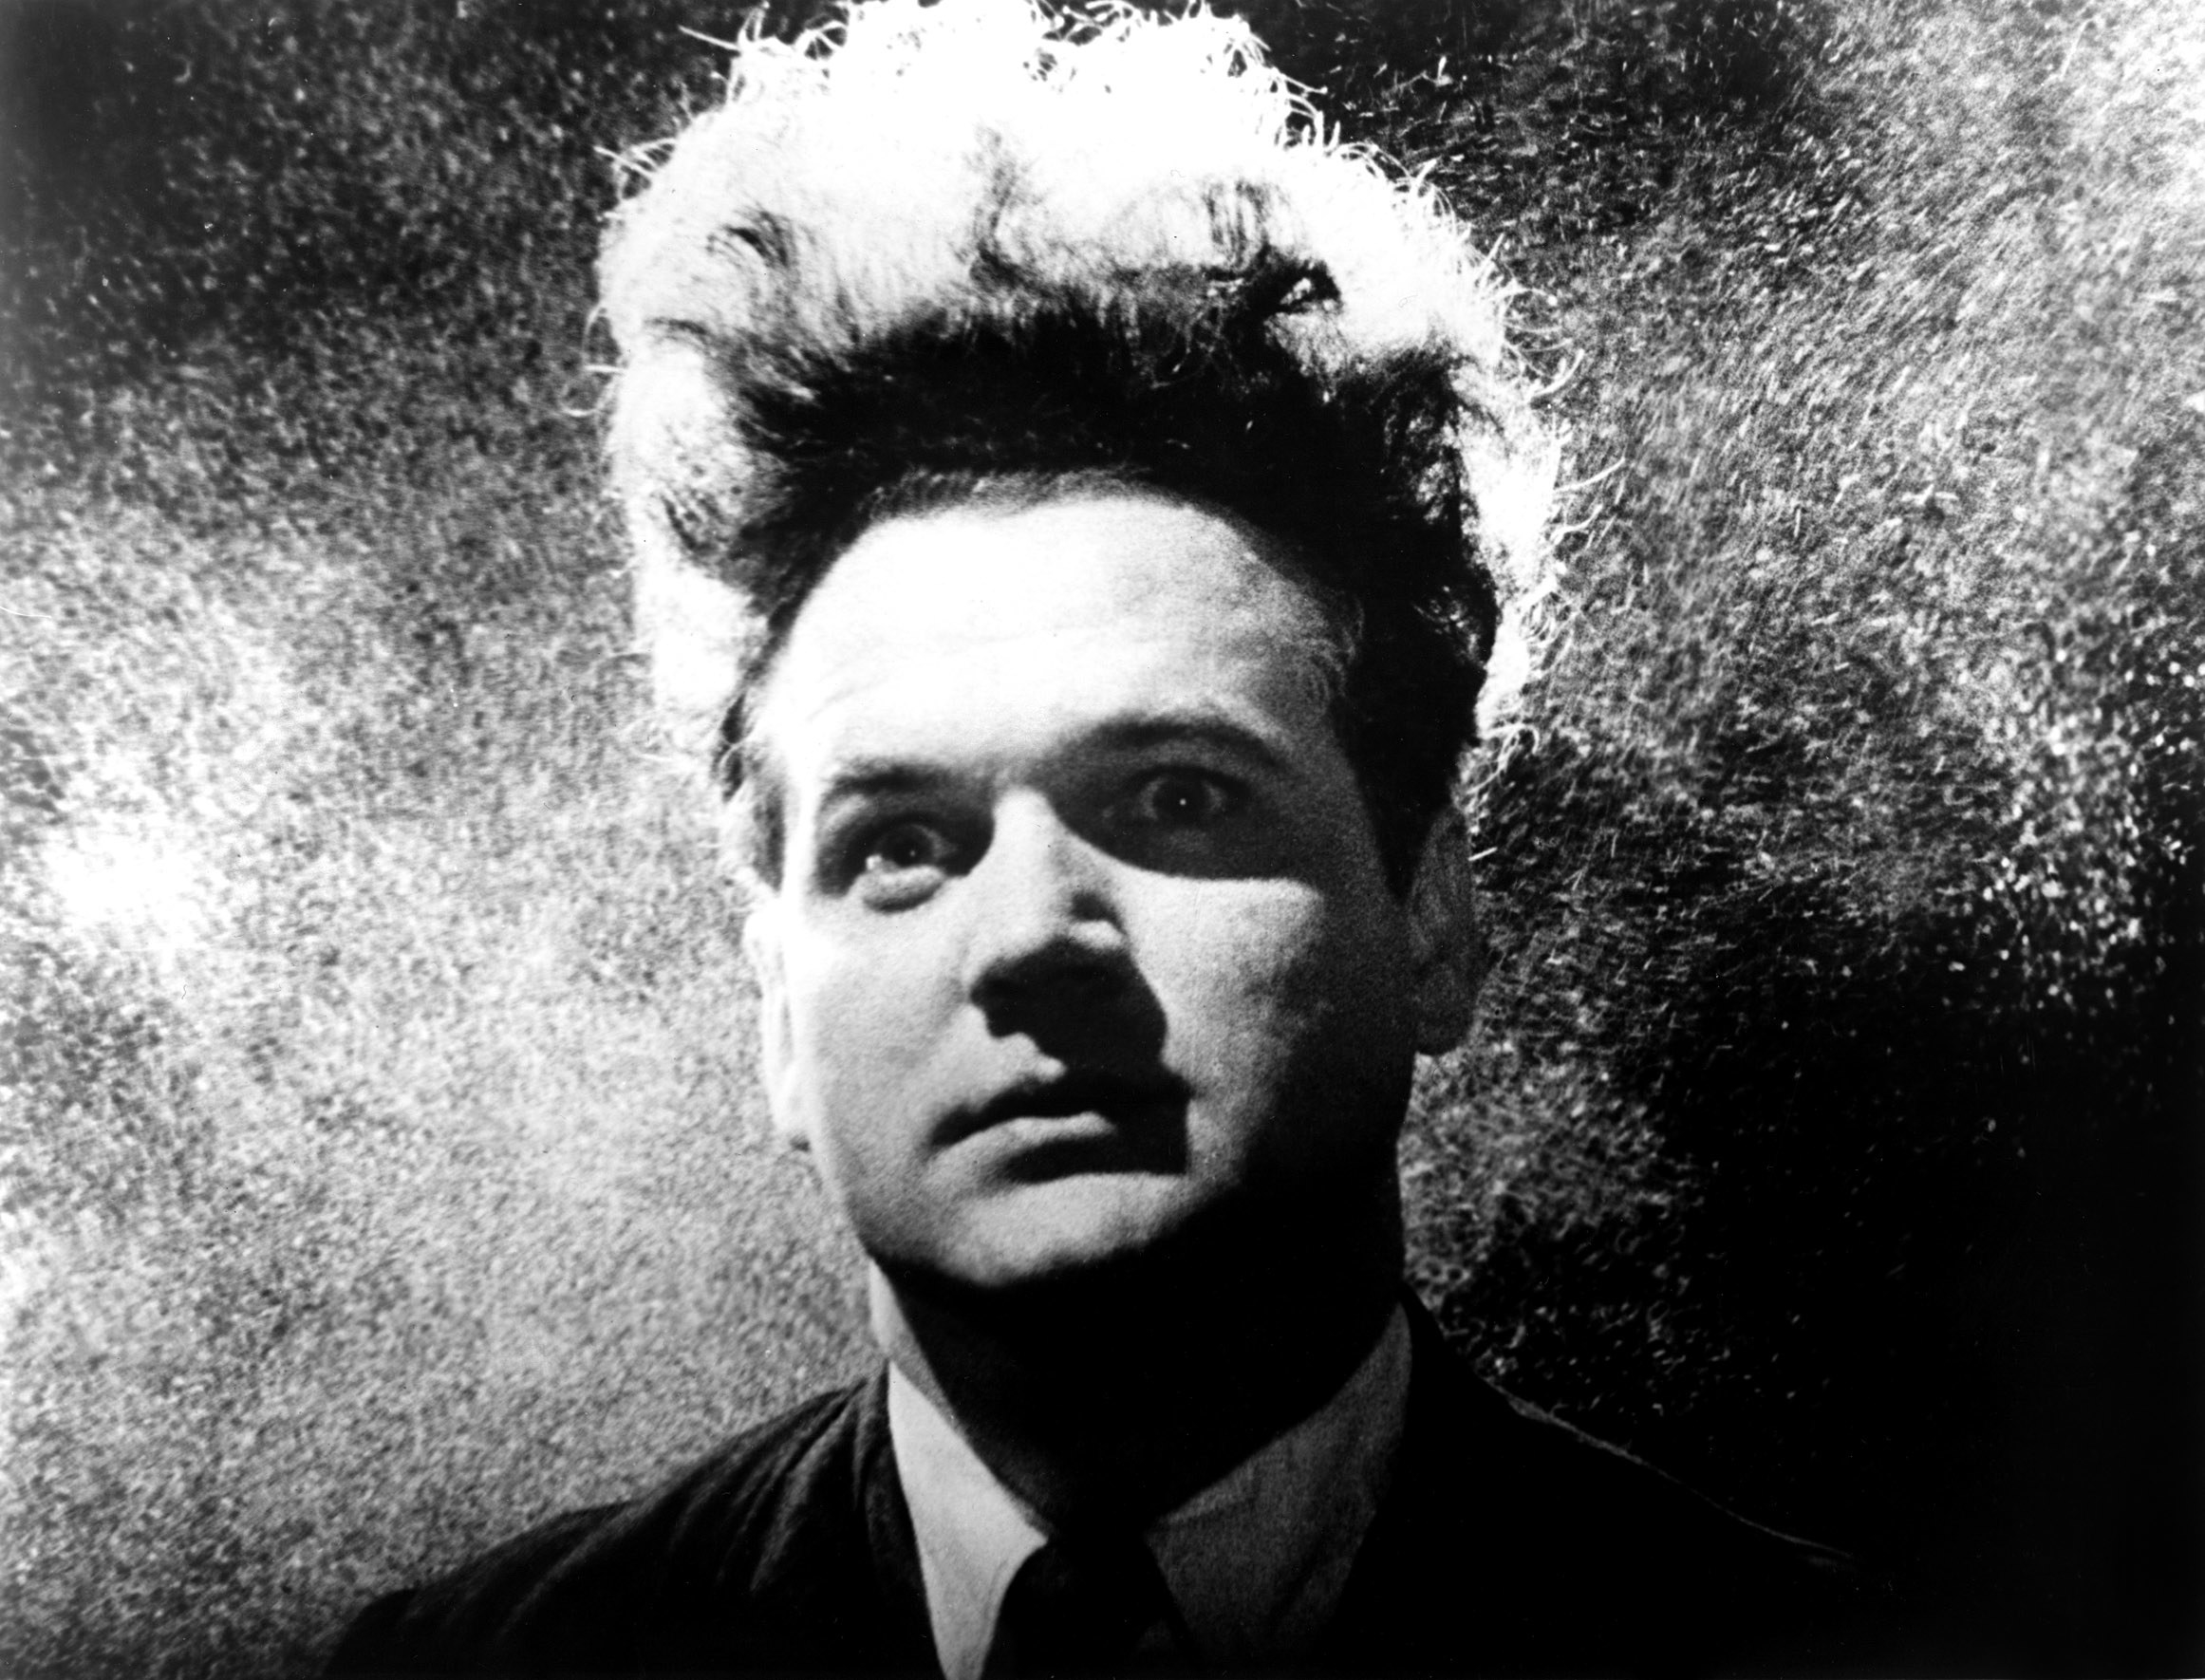 Jack Nance with wild hair in the film